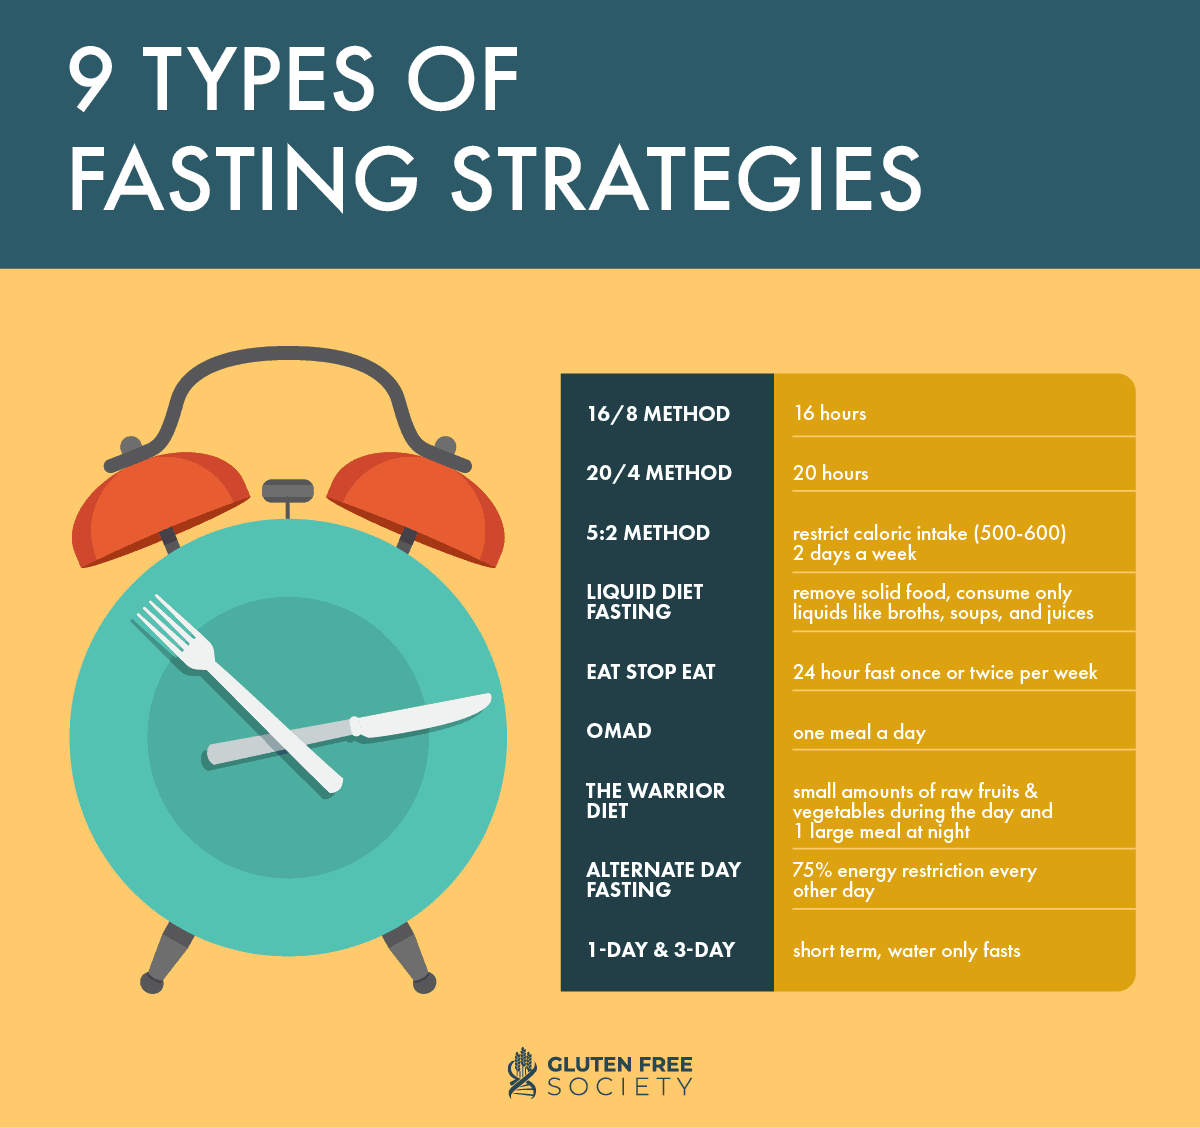 9 Types of Fasting Strategies